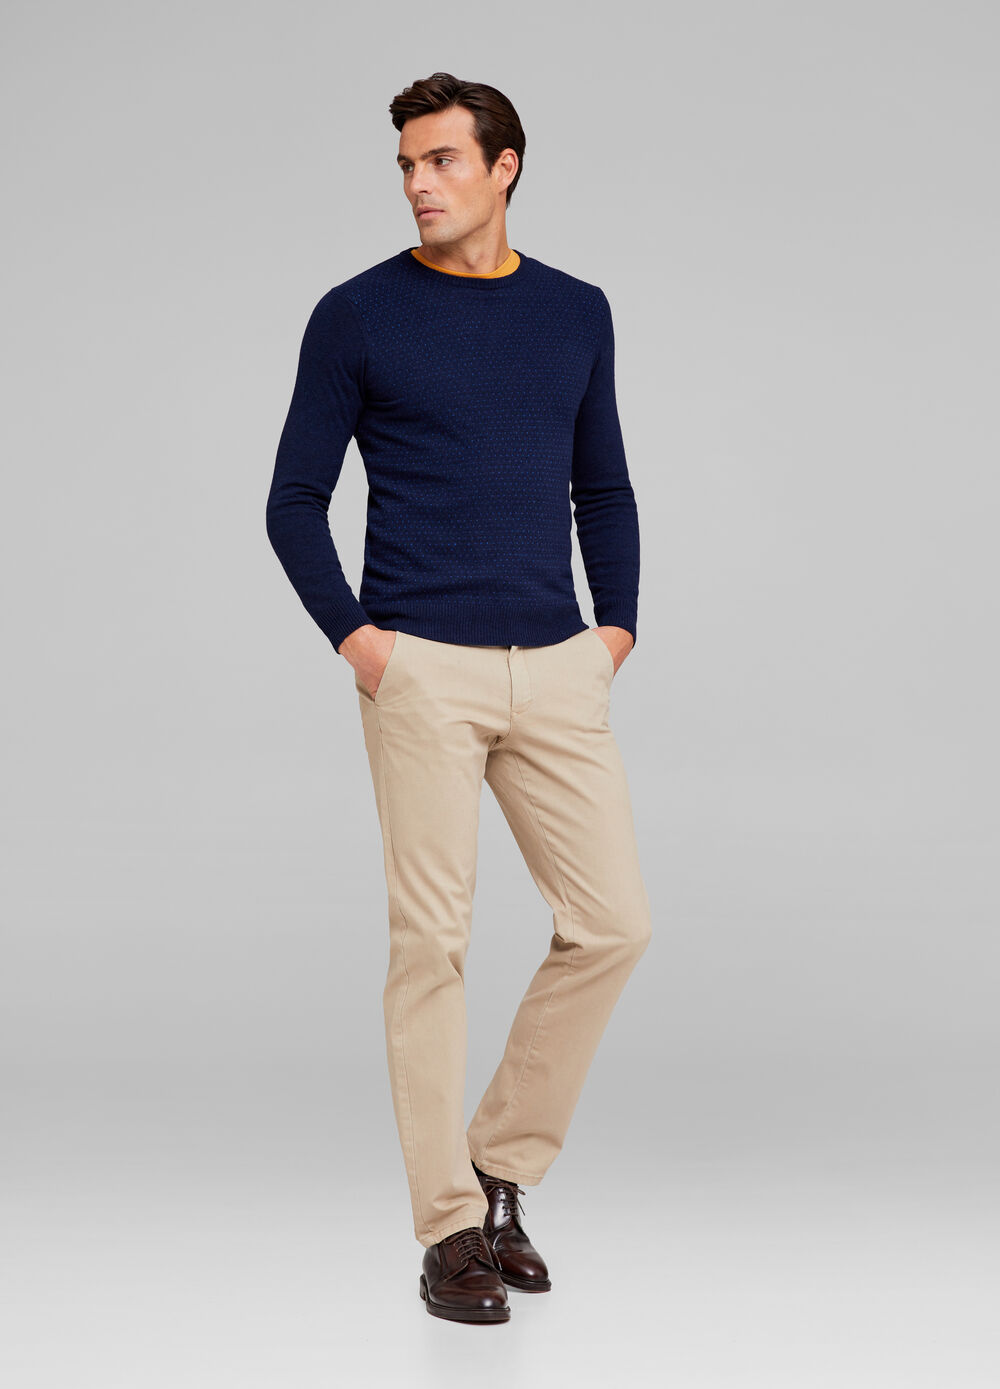 Tencel and wool blend pullover with polka dots